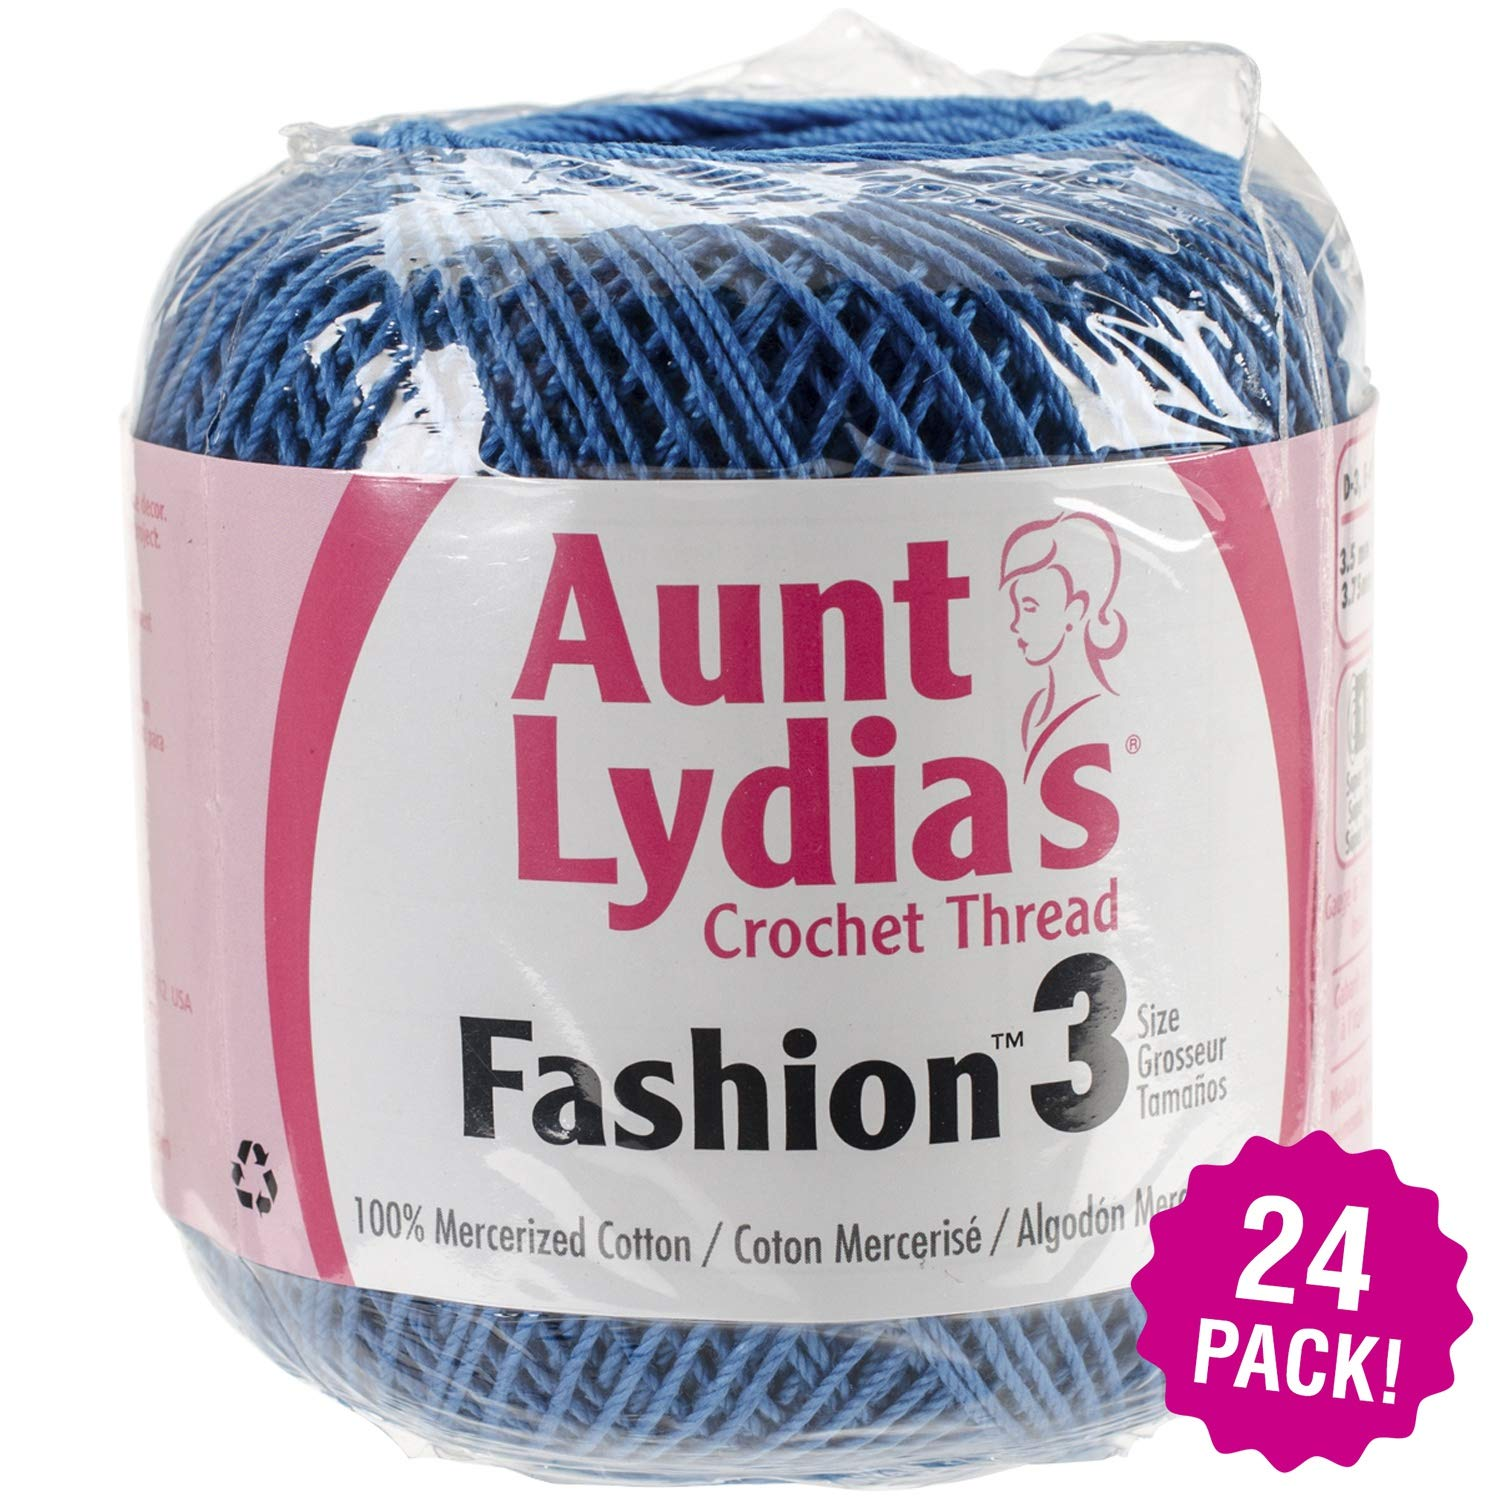 Aunt Lydia's 96911 Fashion Crochet Thread Size 3-Blue Hawaii, Multipack of 24 by Aunt Lydia's (Image #1)